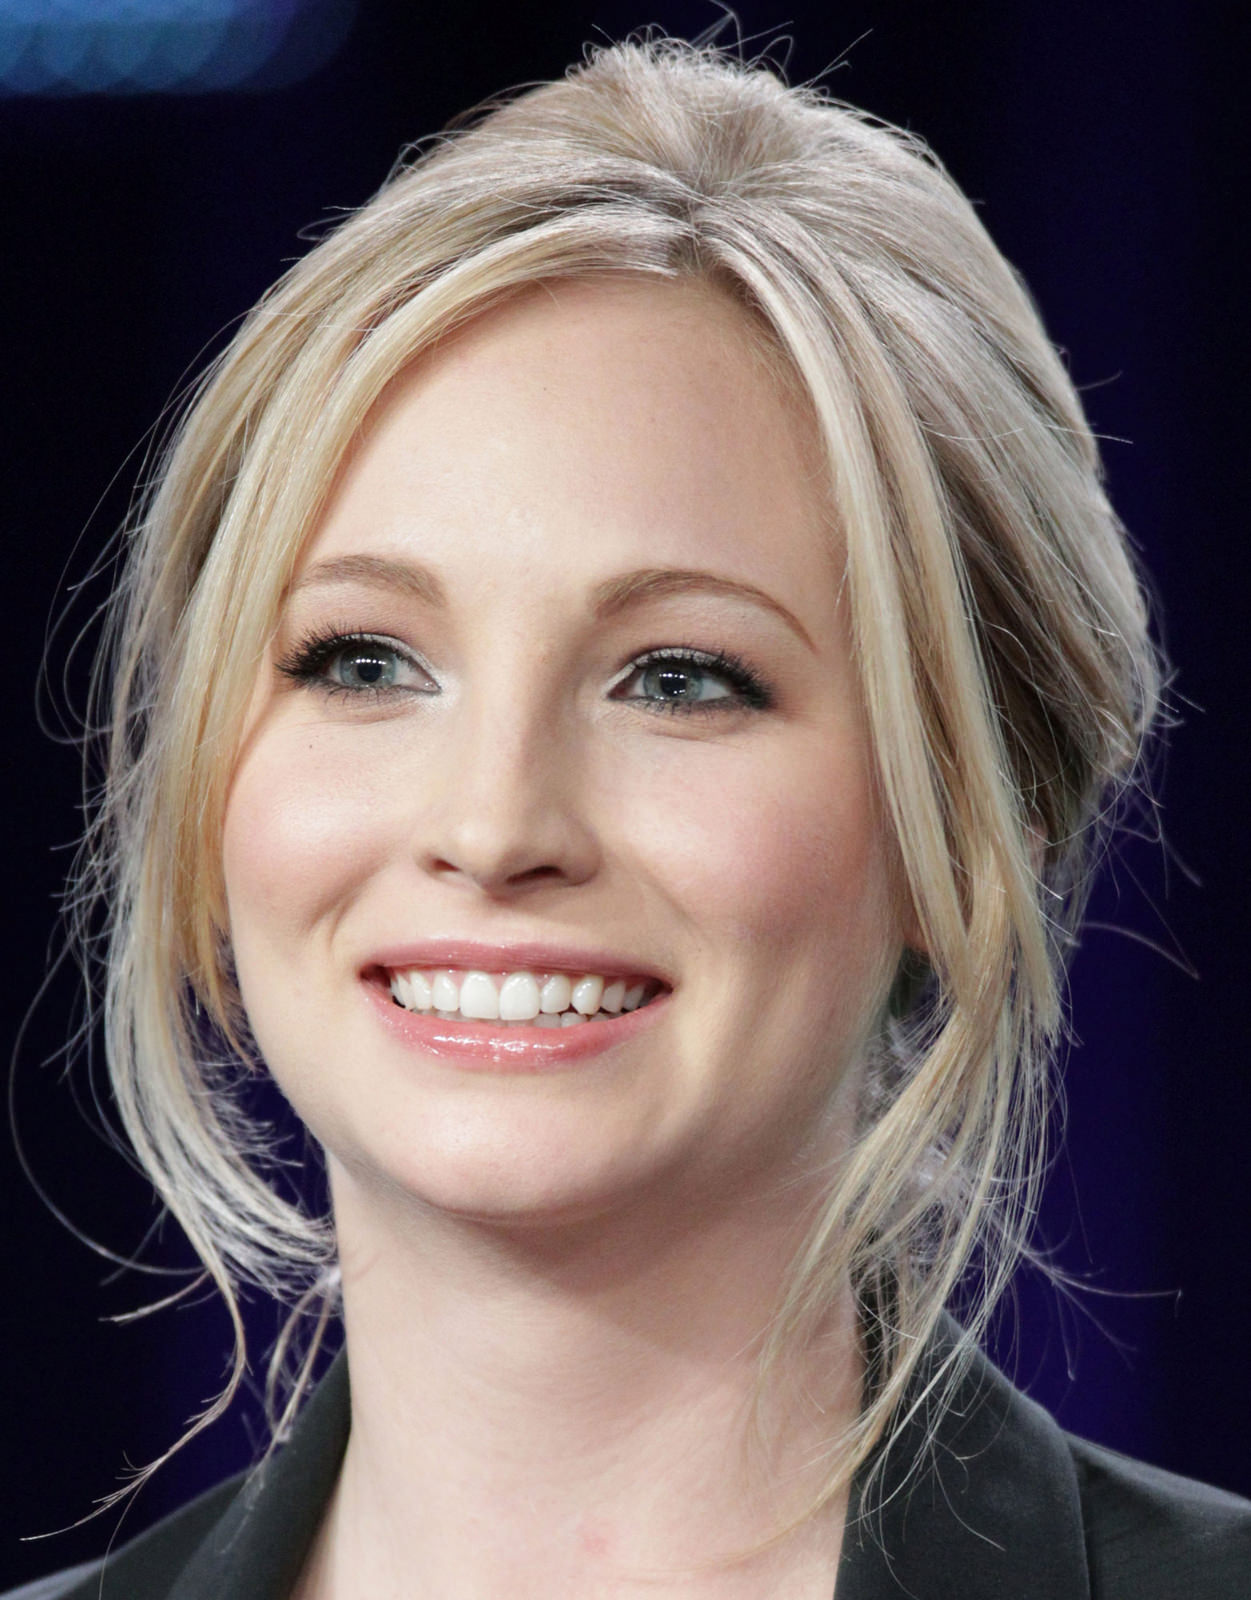 Candice Accola Photo Gallery